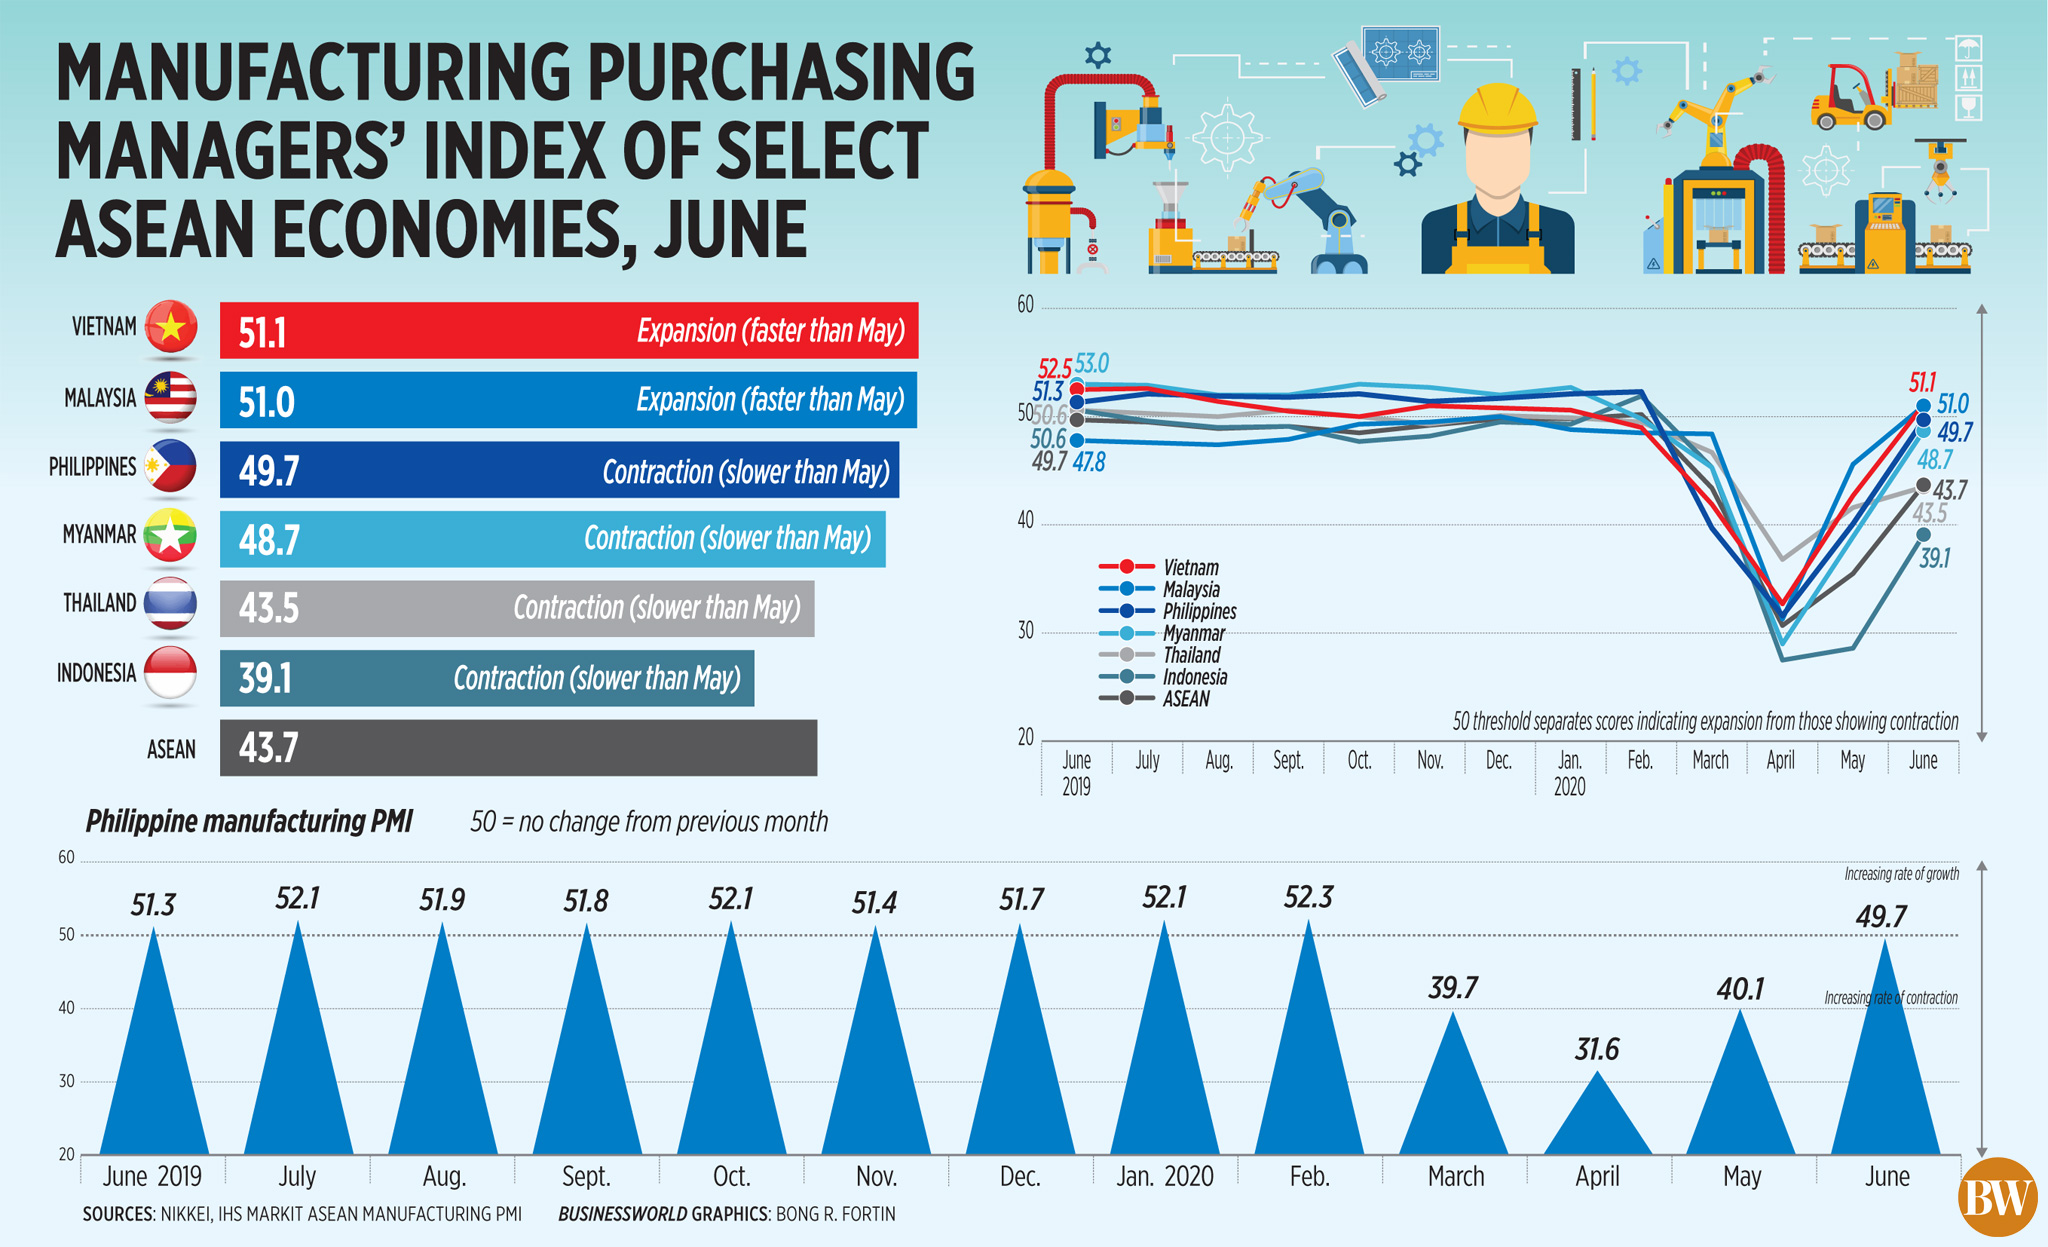 50065304672 4d9ec34f32 o - Manufacturing purchasing managers' index of select ASEAN economies, June (2020)